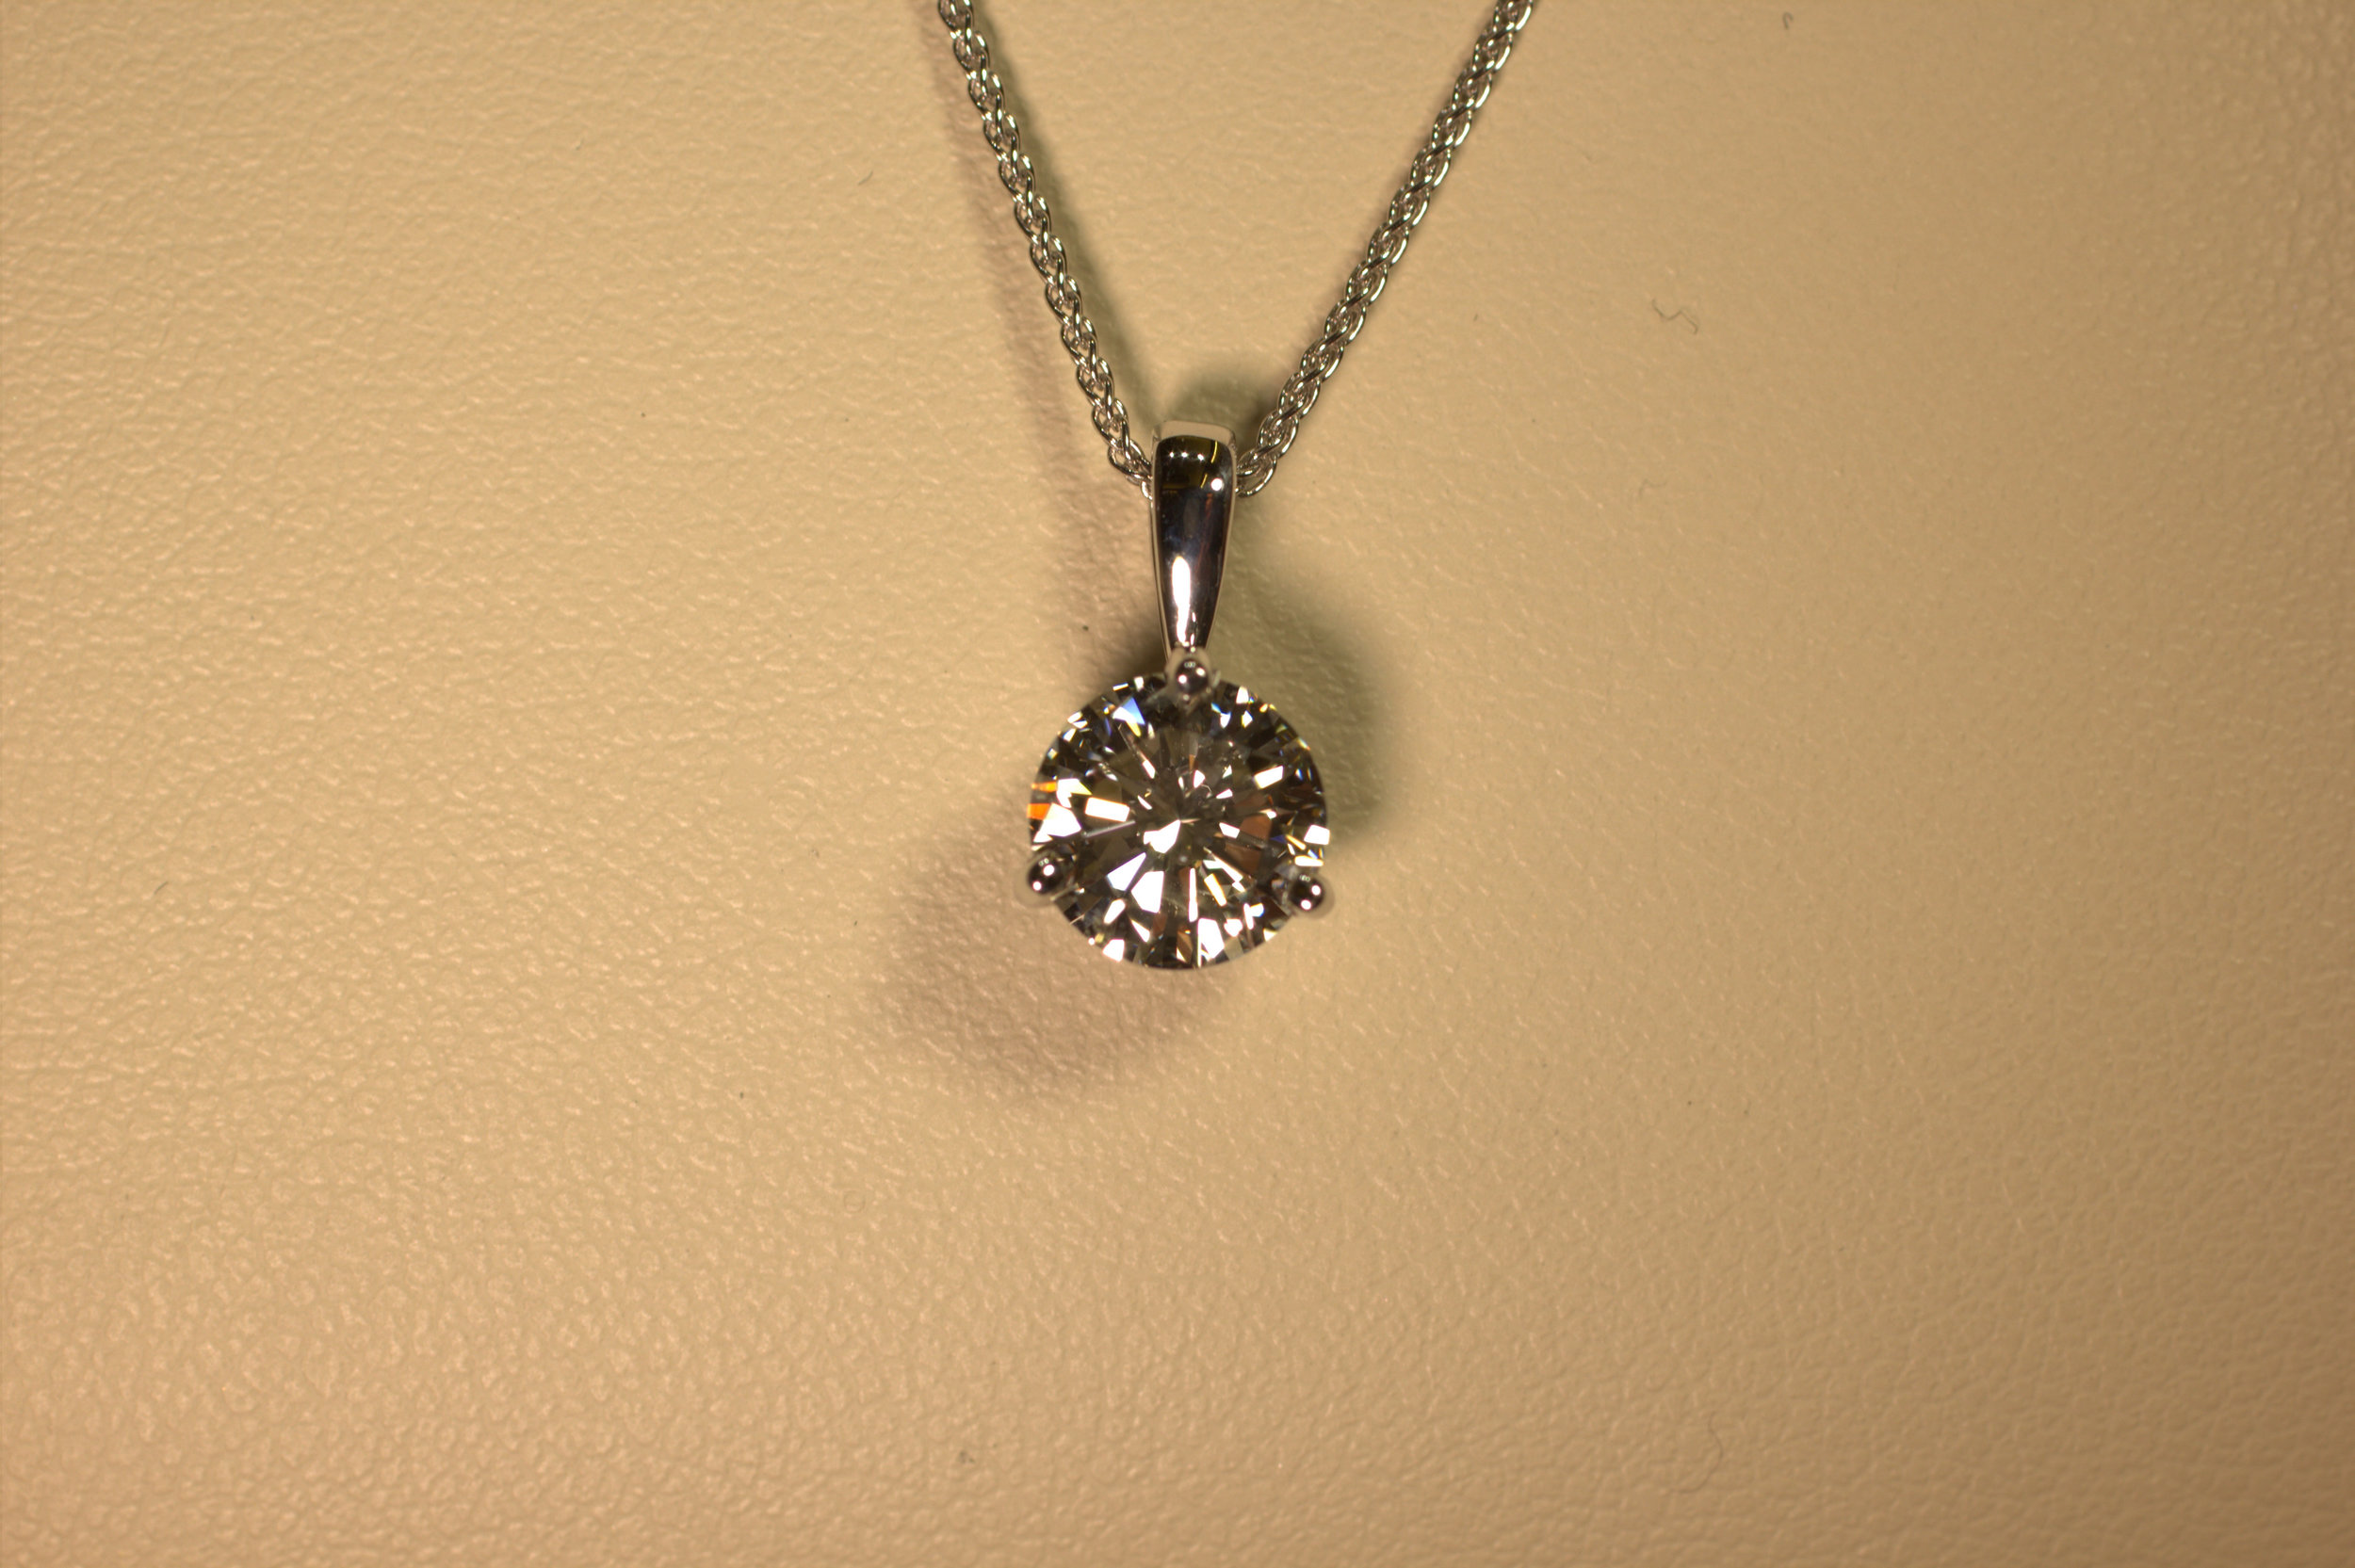 .80 carat diamond solitaire pendant. This is a perfect gift for any woman. Anyone who doesn't have one wants one. Very versatile can be dressed up or dressed down. This classic gift is a great is perfect.  $5,500